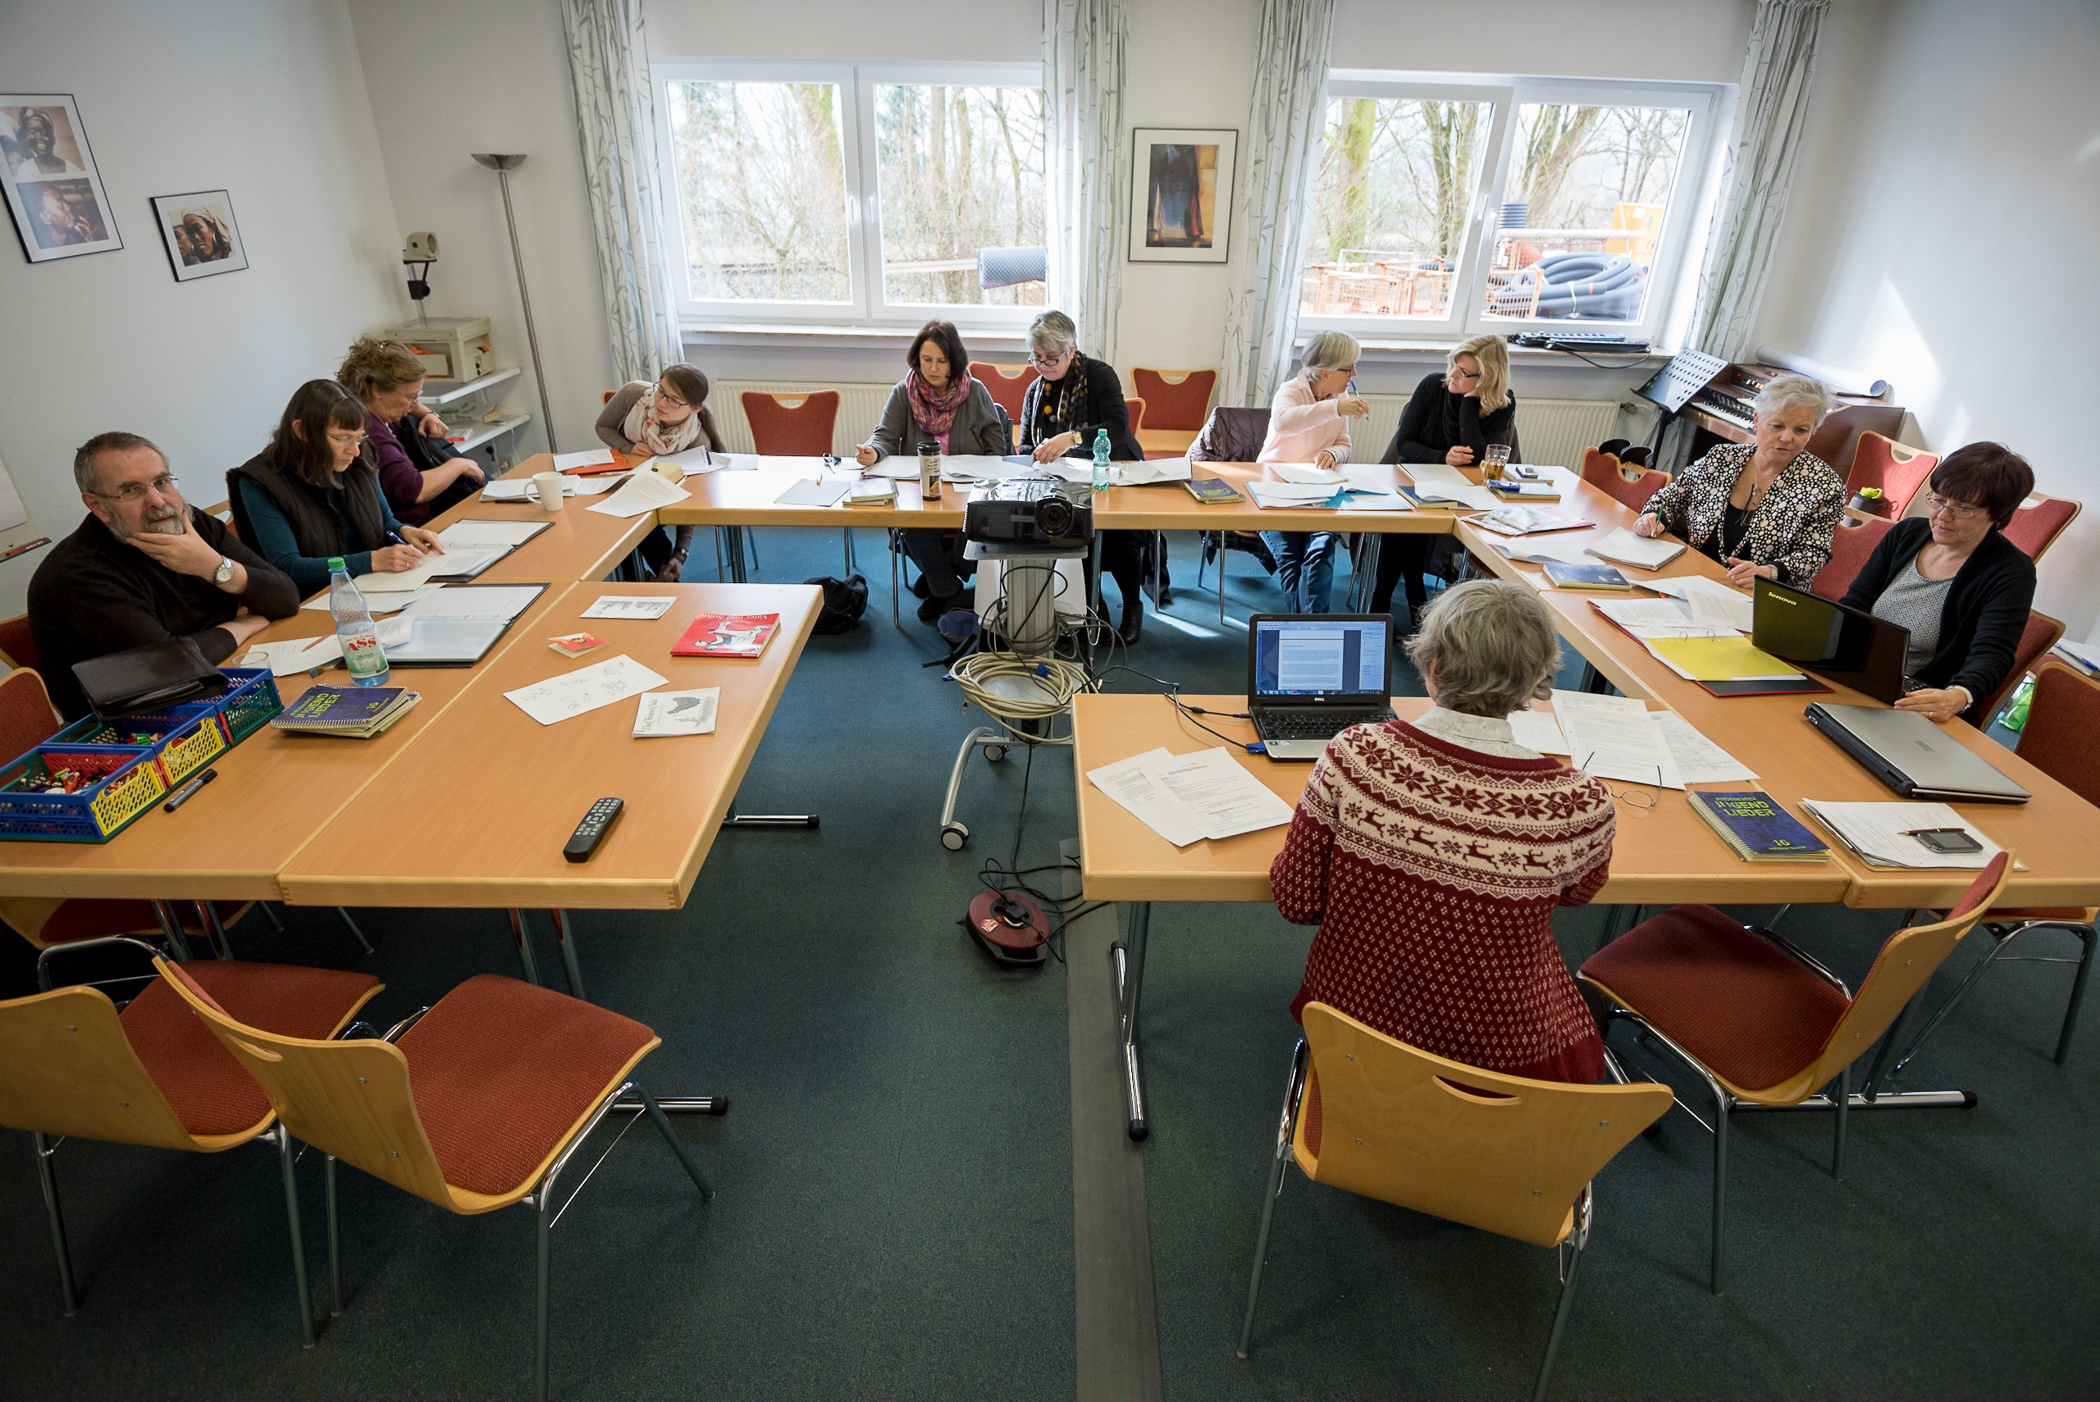 Participants in the German for Refugees course discuss the effectiveness of their sample lessons as well as additional teaching tools at the Wycliffe Germany offices in Holzhausen, Germany. The German for Refugees course is a train-the-trainer course designed to equip Germans to teach their language to recently arriving refugees.